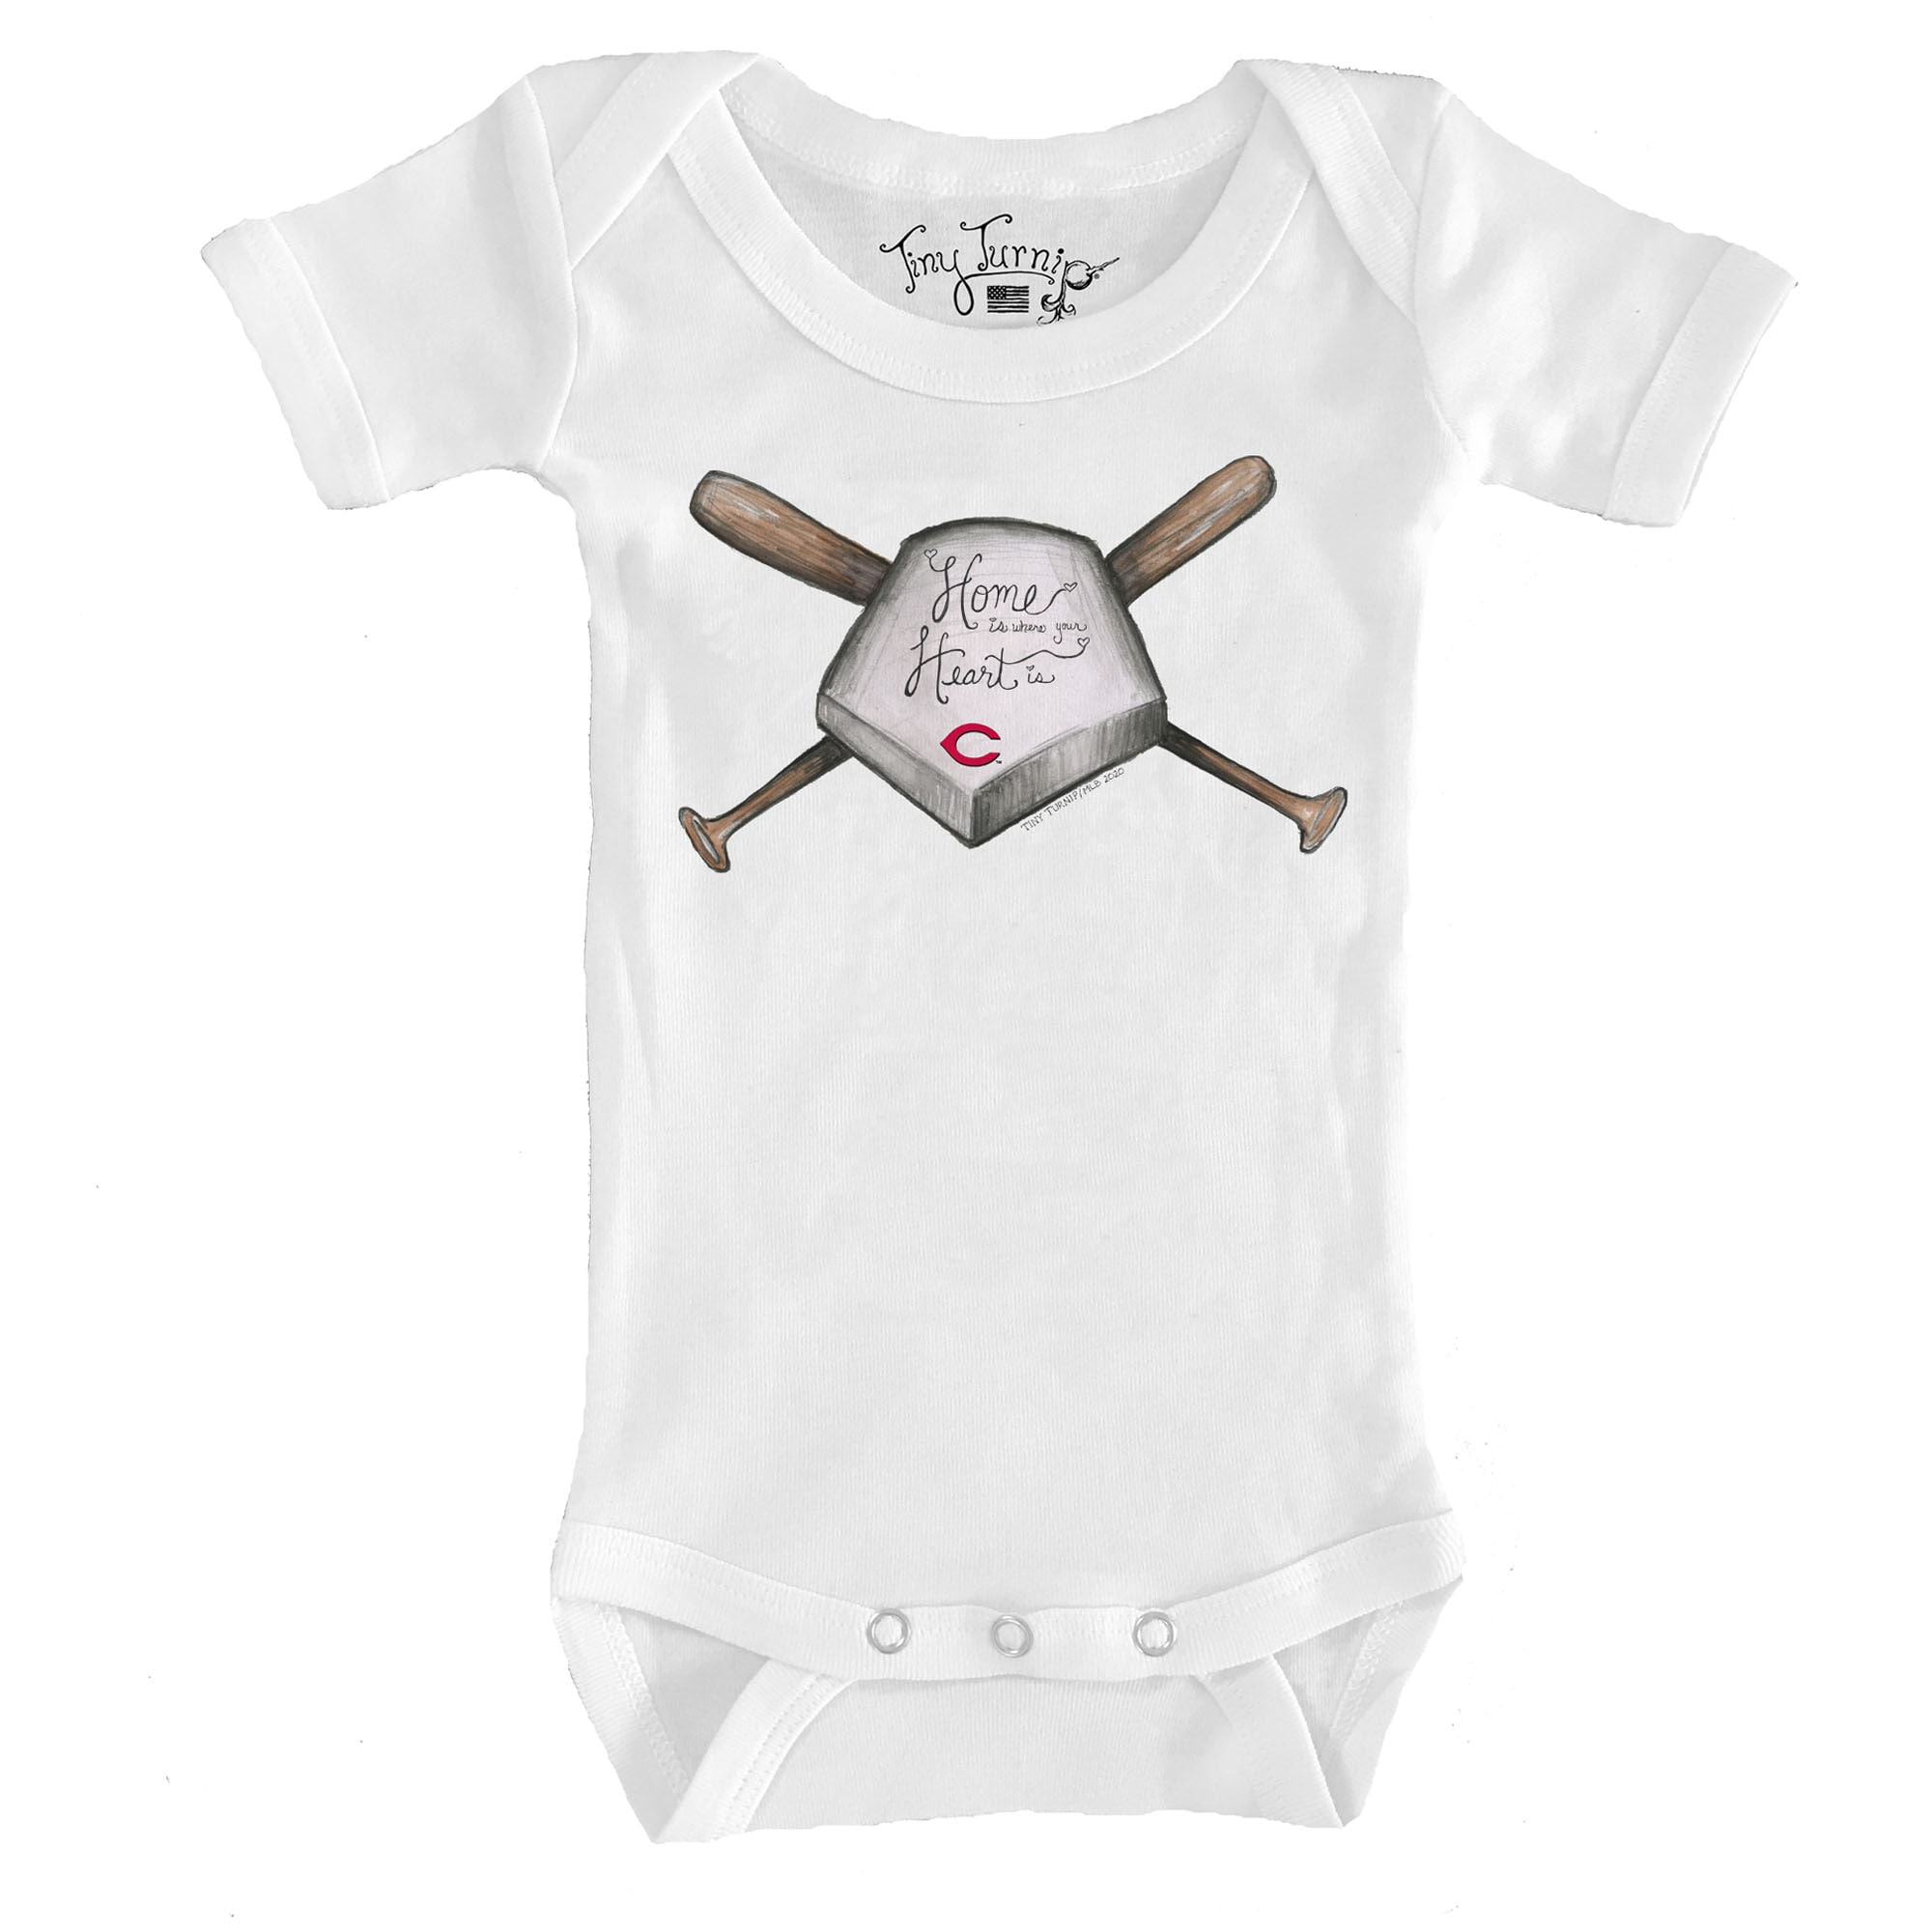 Cincinnati Reds Tiny Turnip Infant Home Is Where Your Heart Is Bodysuit - White